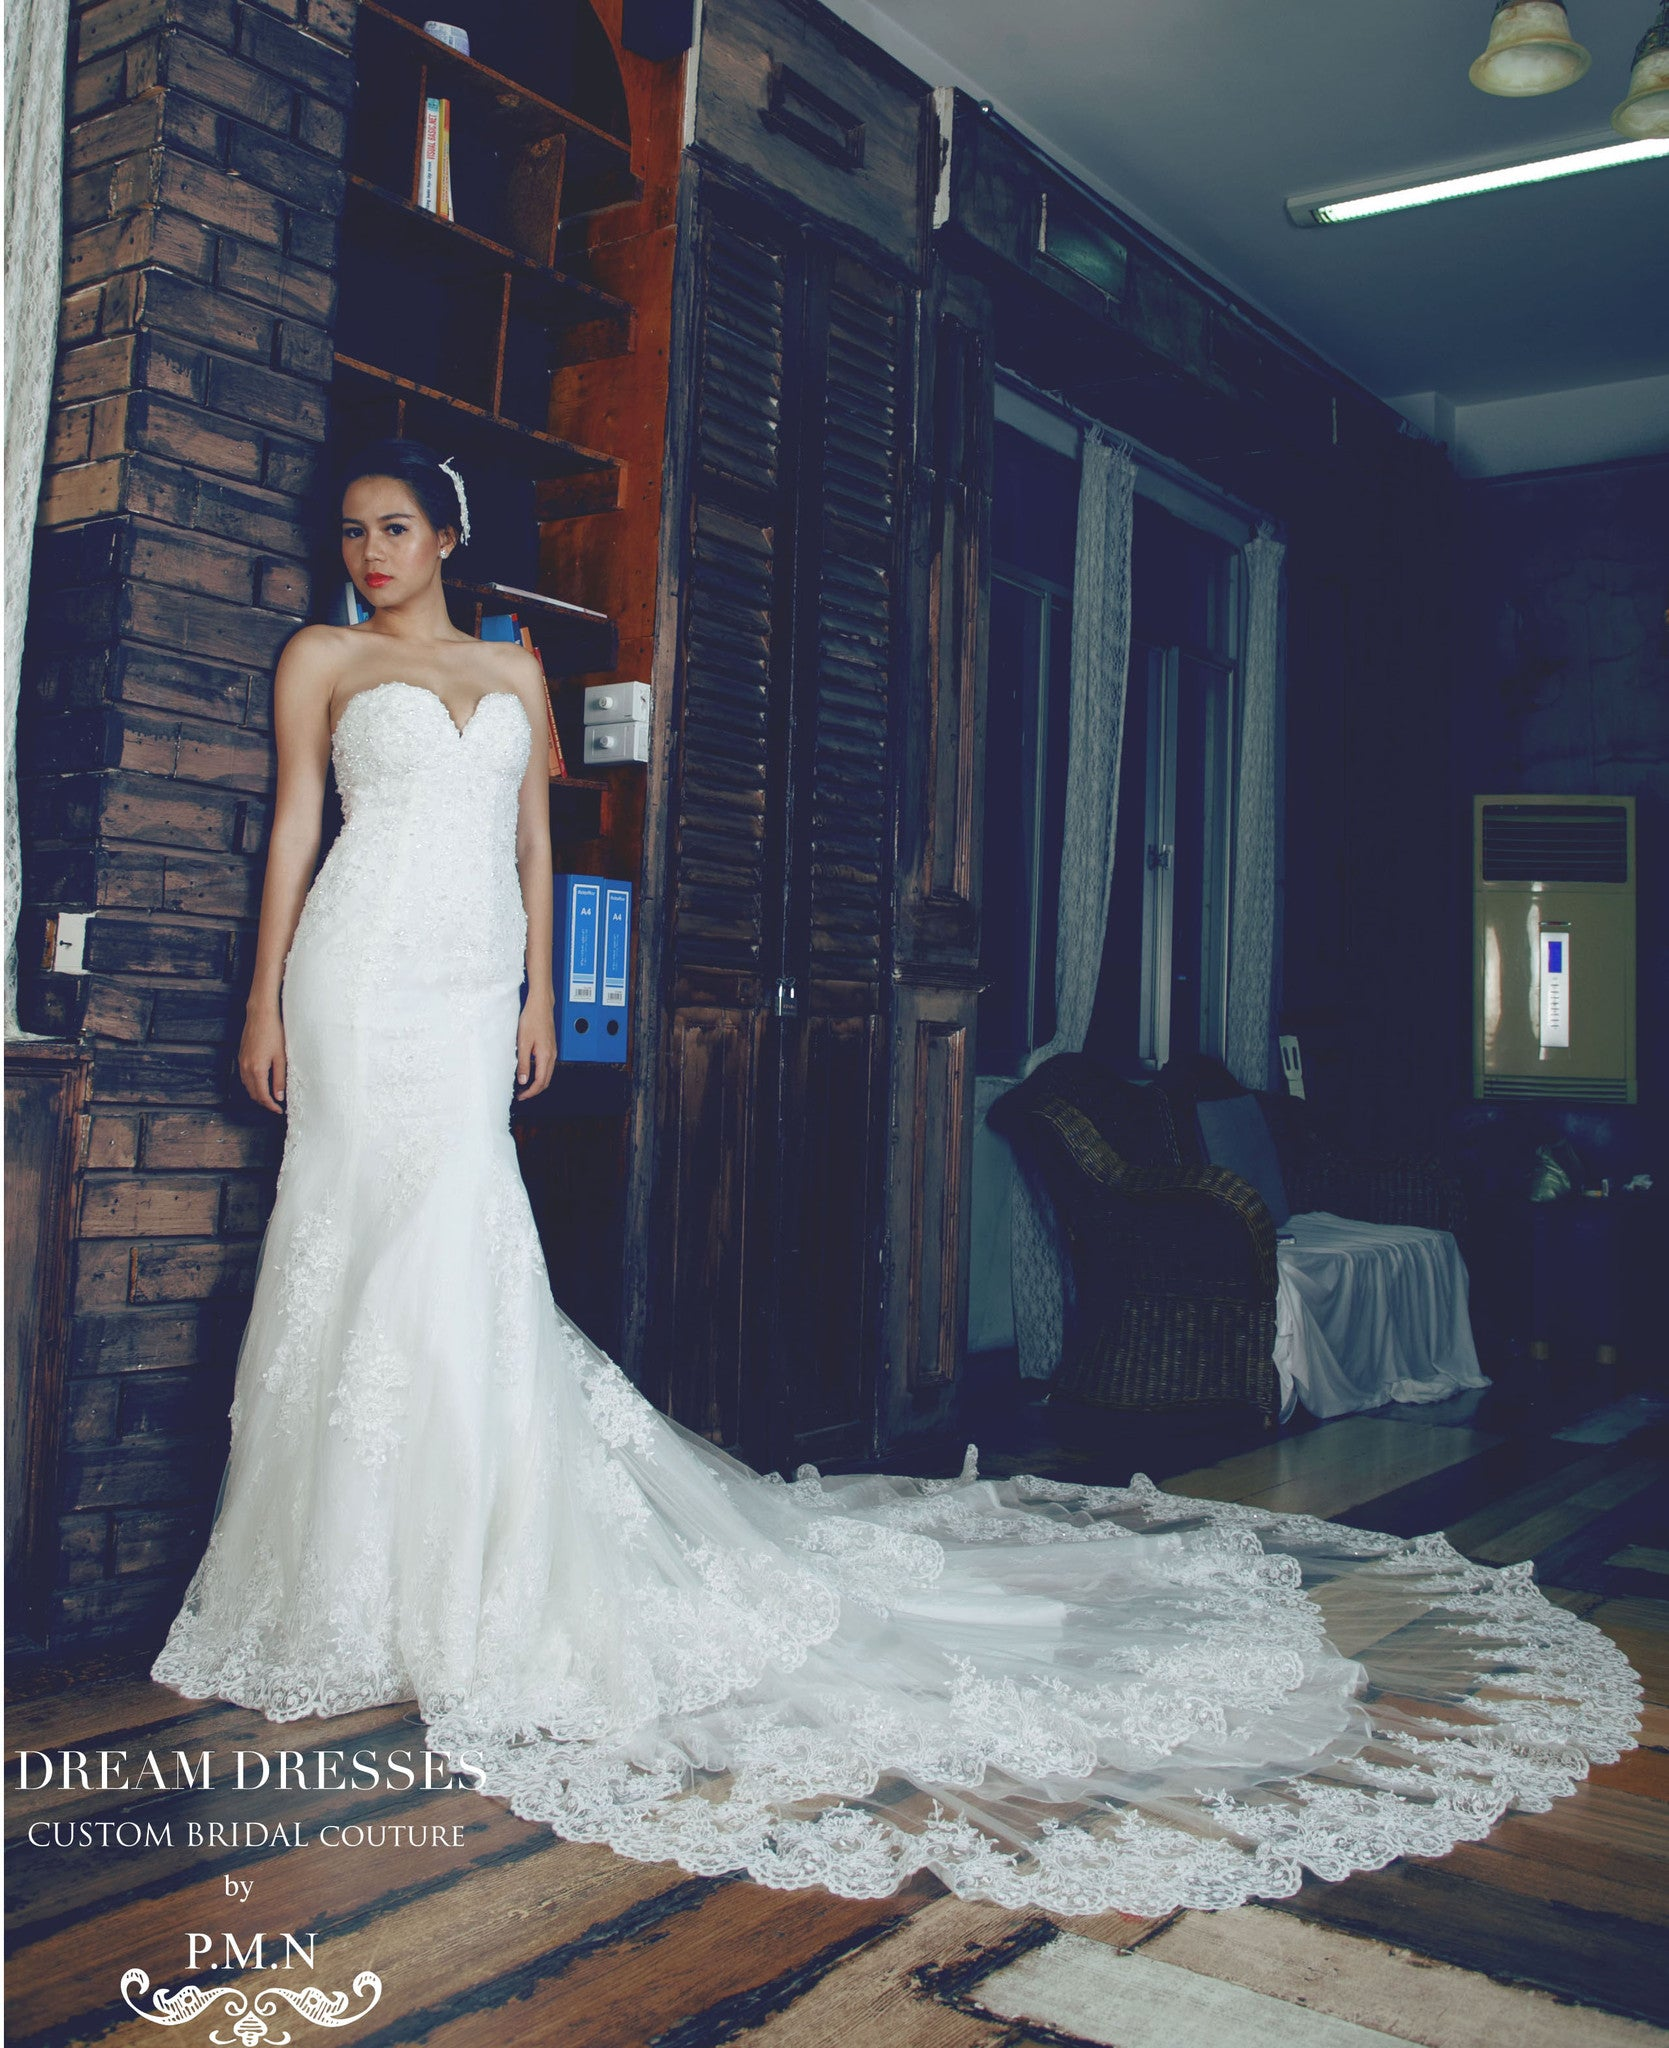 Sweetheart Strapless Wedding Dress with Three Layer Long Train (Style # MALEFICENT PB094) - Dream Dresses by P.M.N  - 2